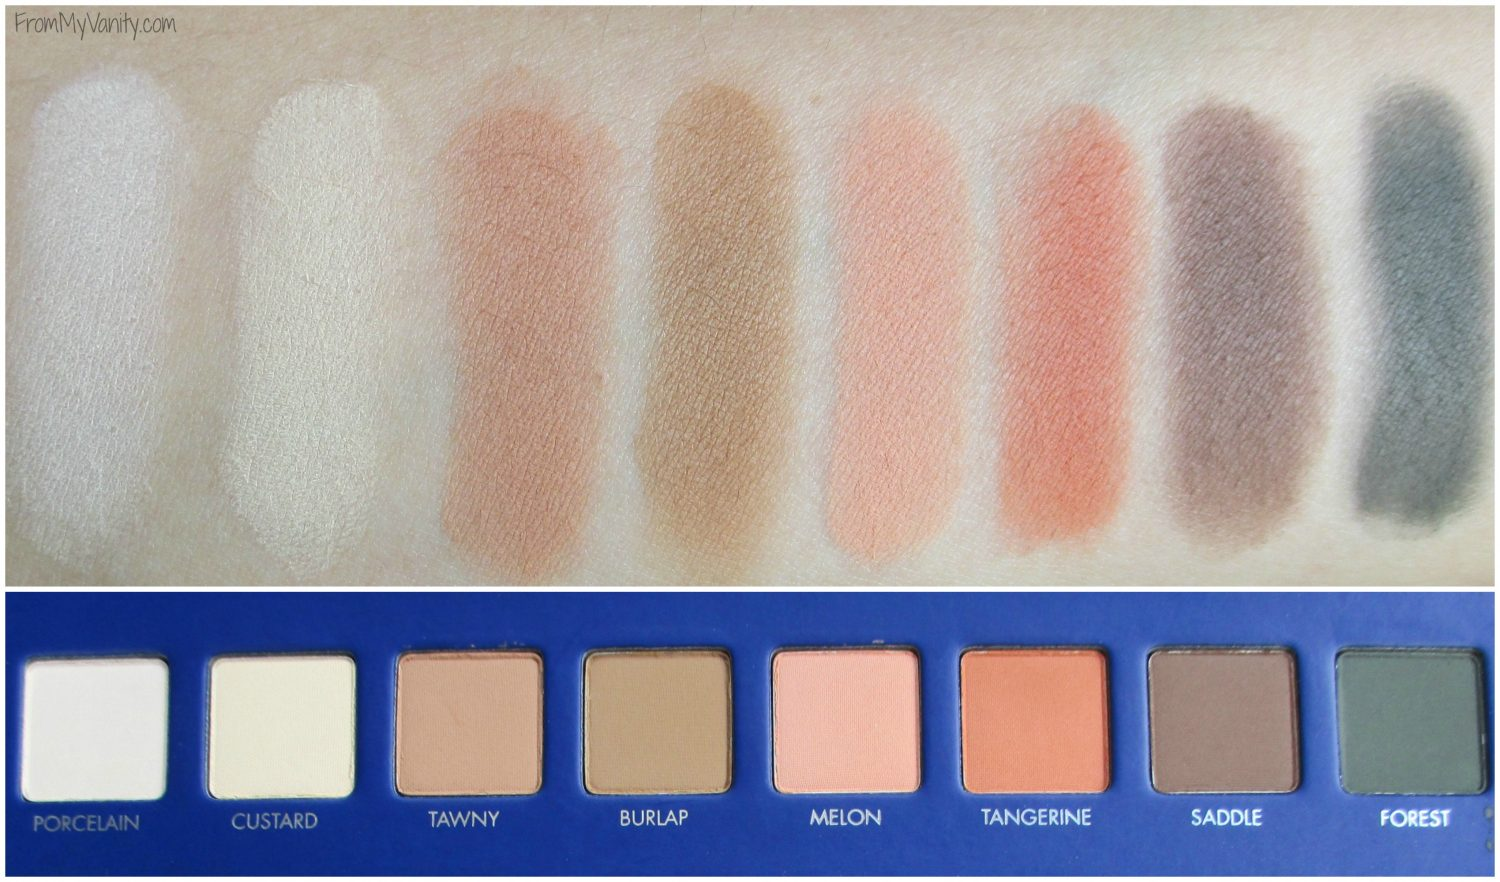 LORAC Mega Pro 2 Eyeshadow Palette // Review, Swatches, & Eye Looks // Swatches of First Row // #LORACCosmetics #MegaPro2 FromMyVanity.com